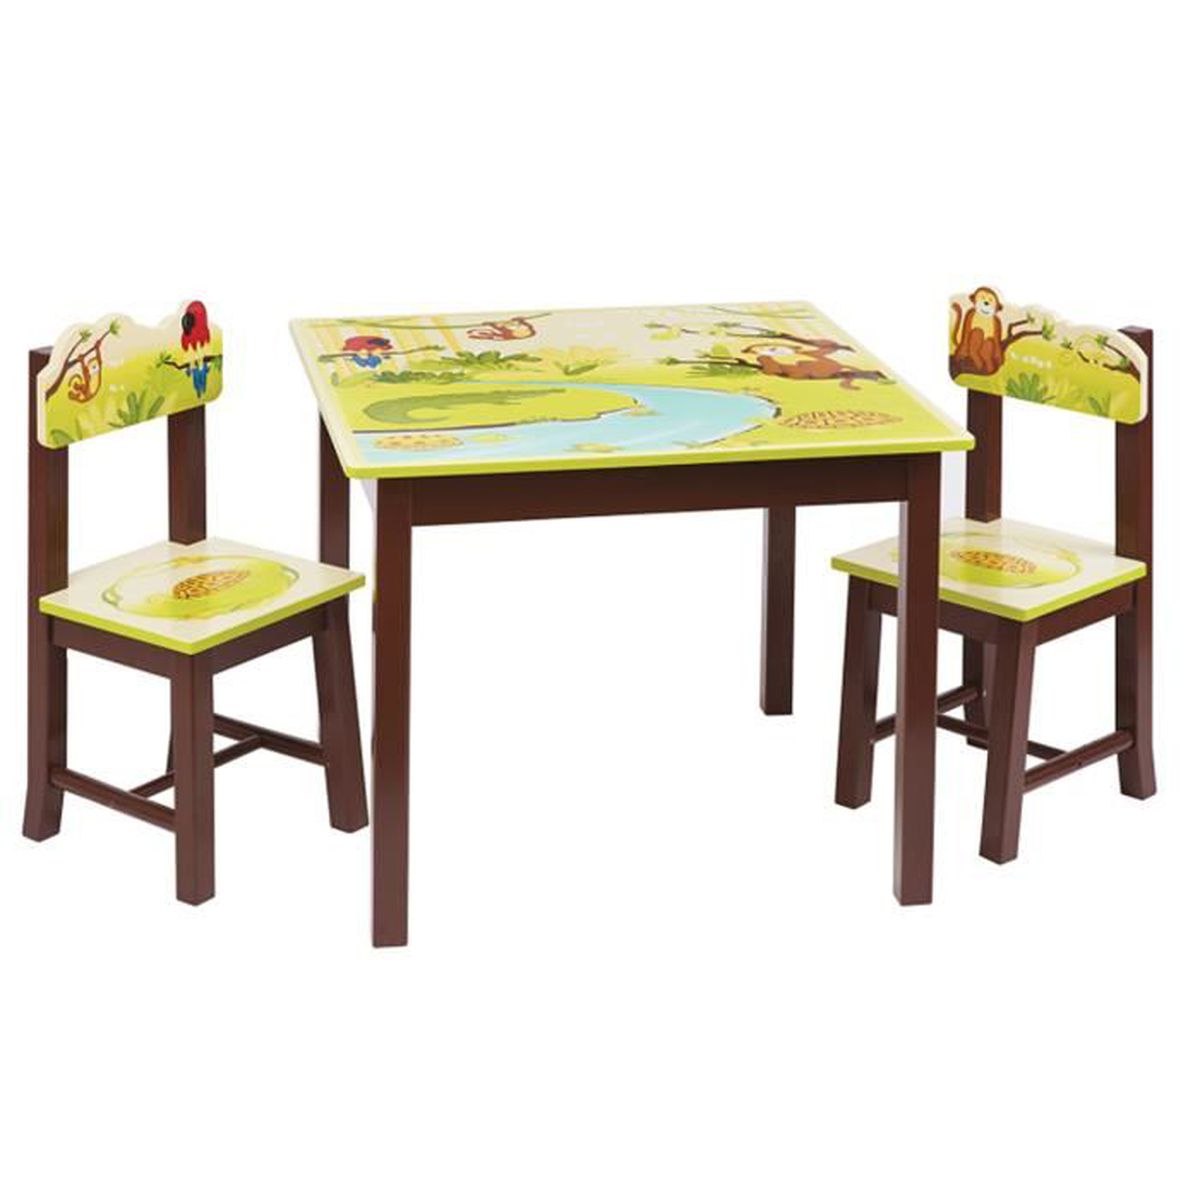 ensemble table et 2 chaises pour enfant en bois brun motif animaux safari achat vente table. Black Bedroom Furniture Sets. Home Design Ideas